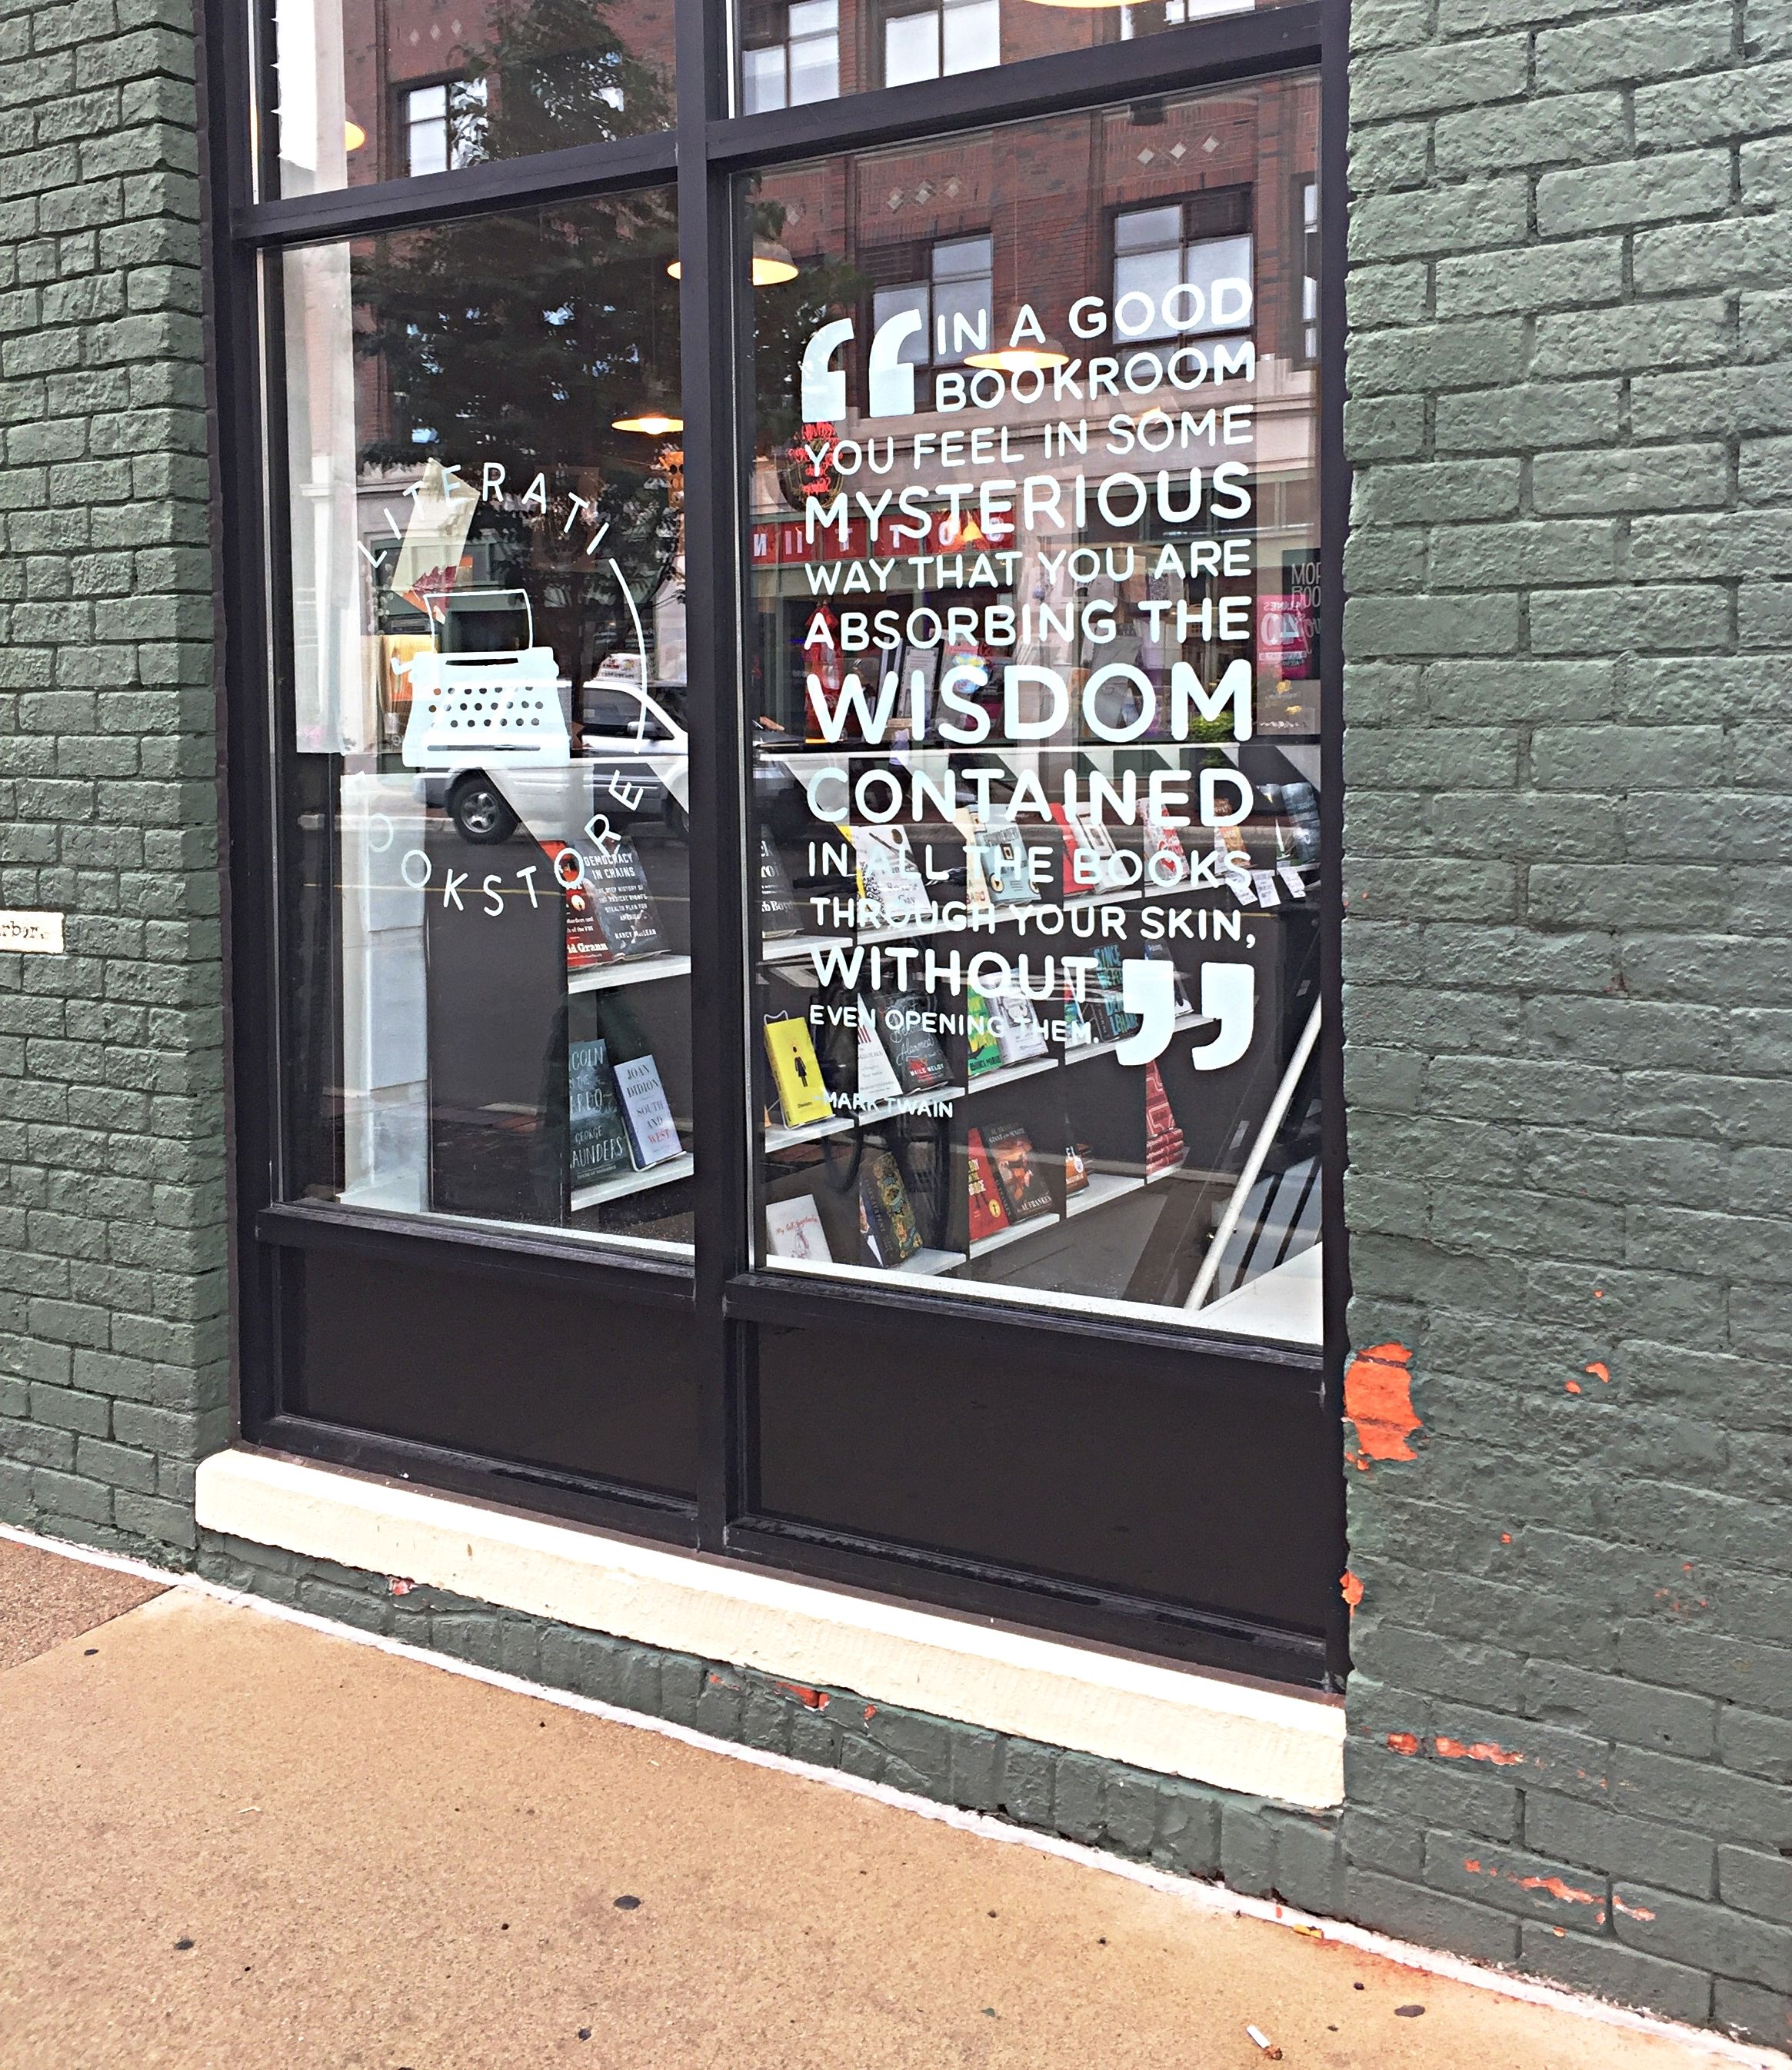 """The quote on the window is: """"In a good book room you feel in some mysterious way that you are absorbing the wisdom contained in all the books through your skin, even without opening them."""""""